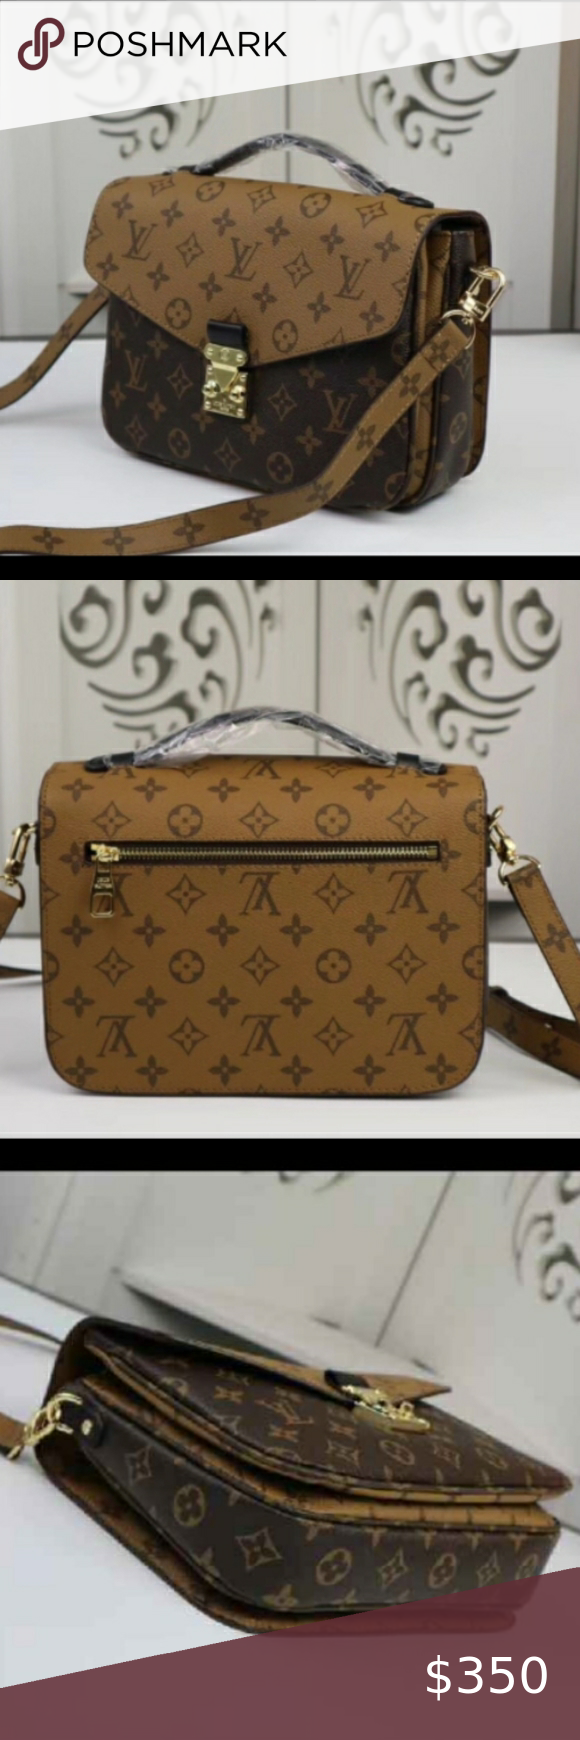 Louis Vuitton 10 X 7 X 4 Real Leather Not Authentic Without Box Zara Bags In 2020 Louis Vuitton Vuitton Zara Bags